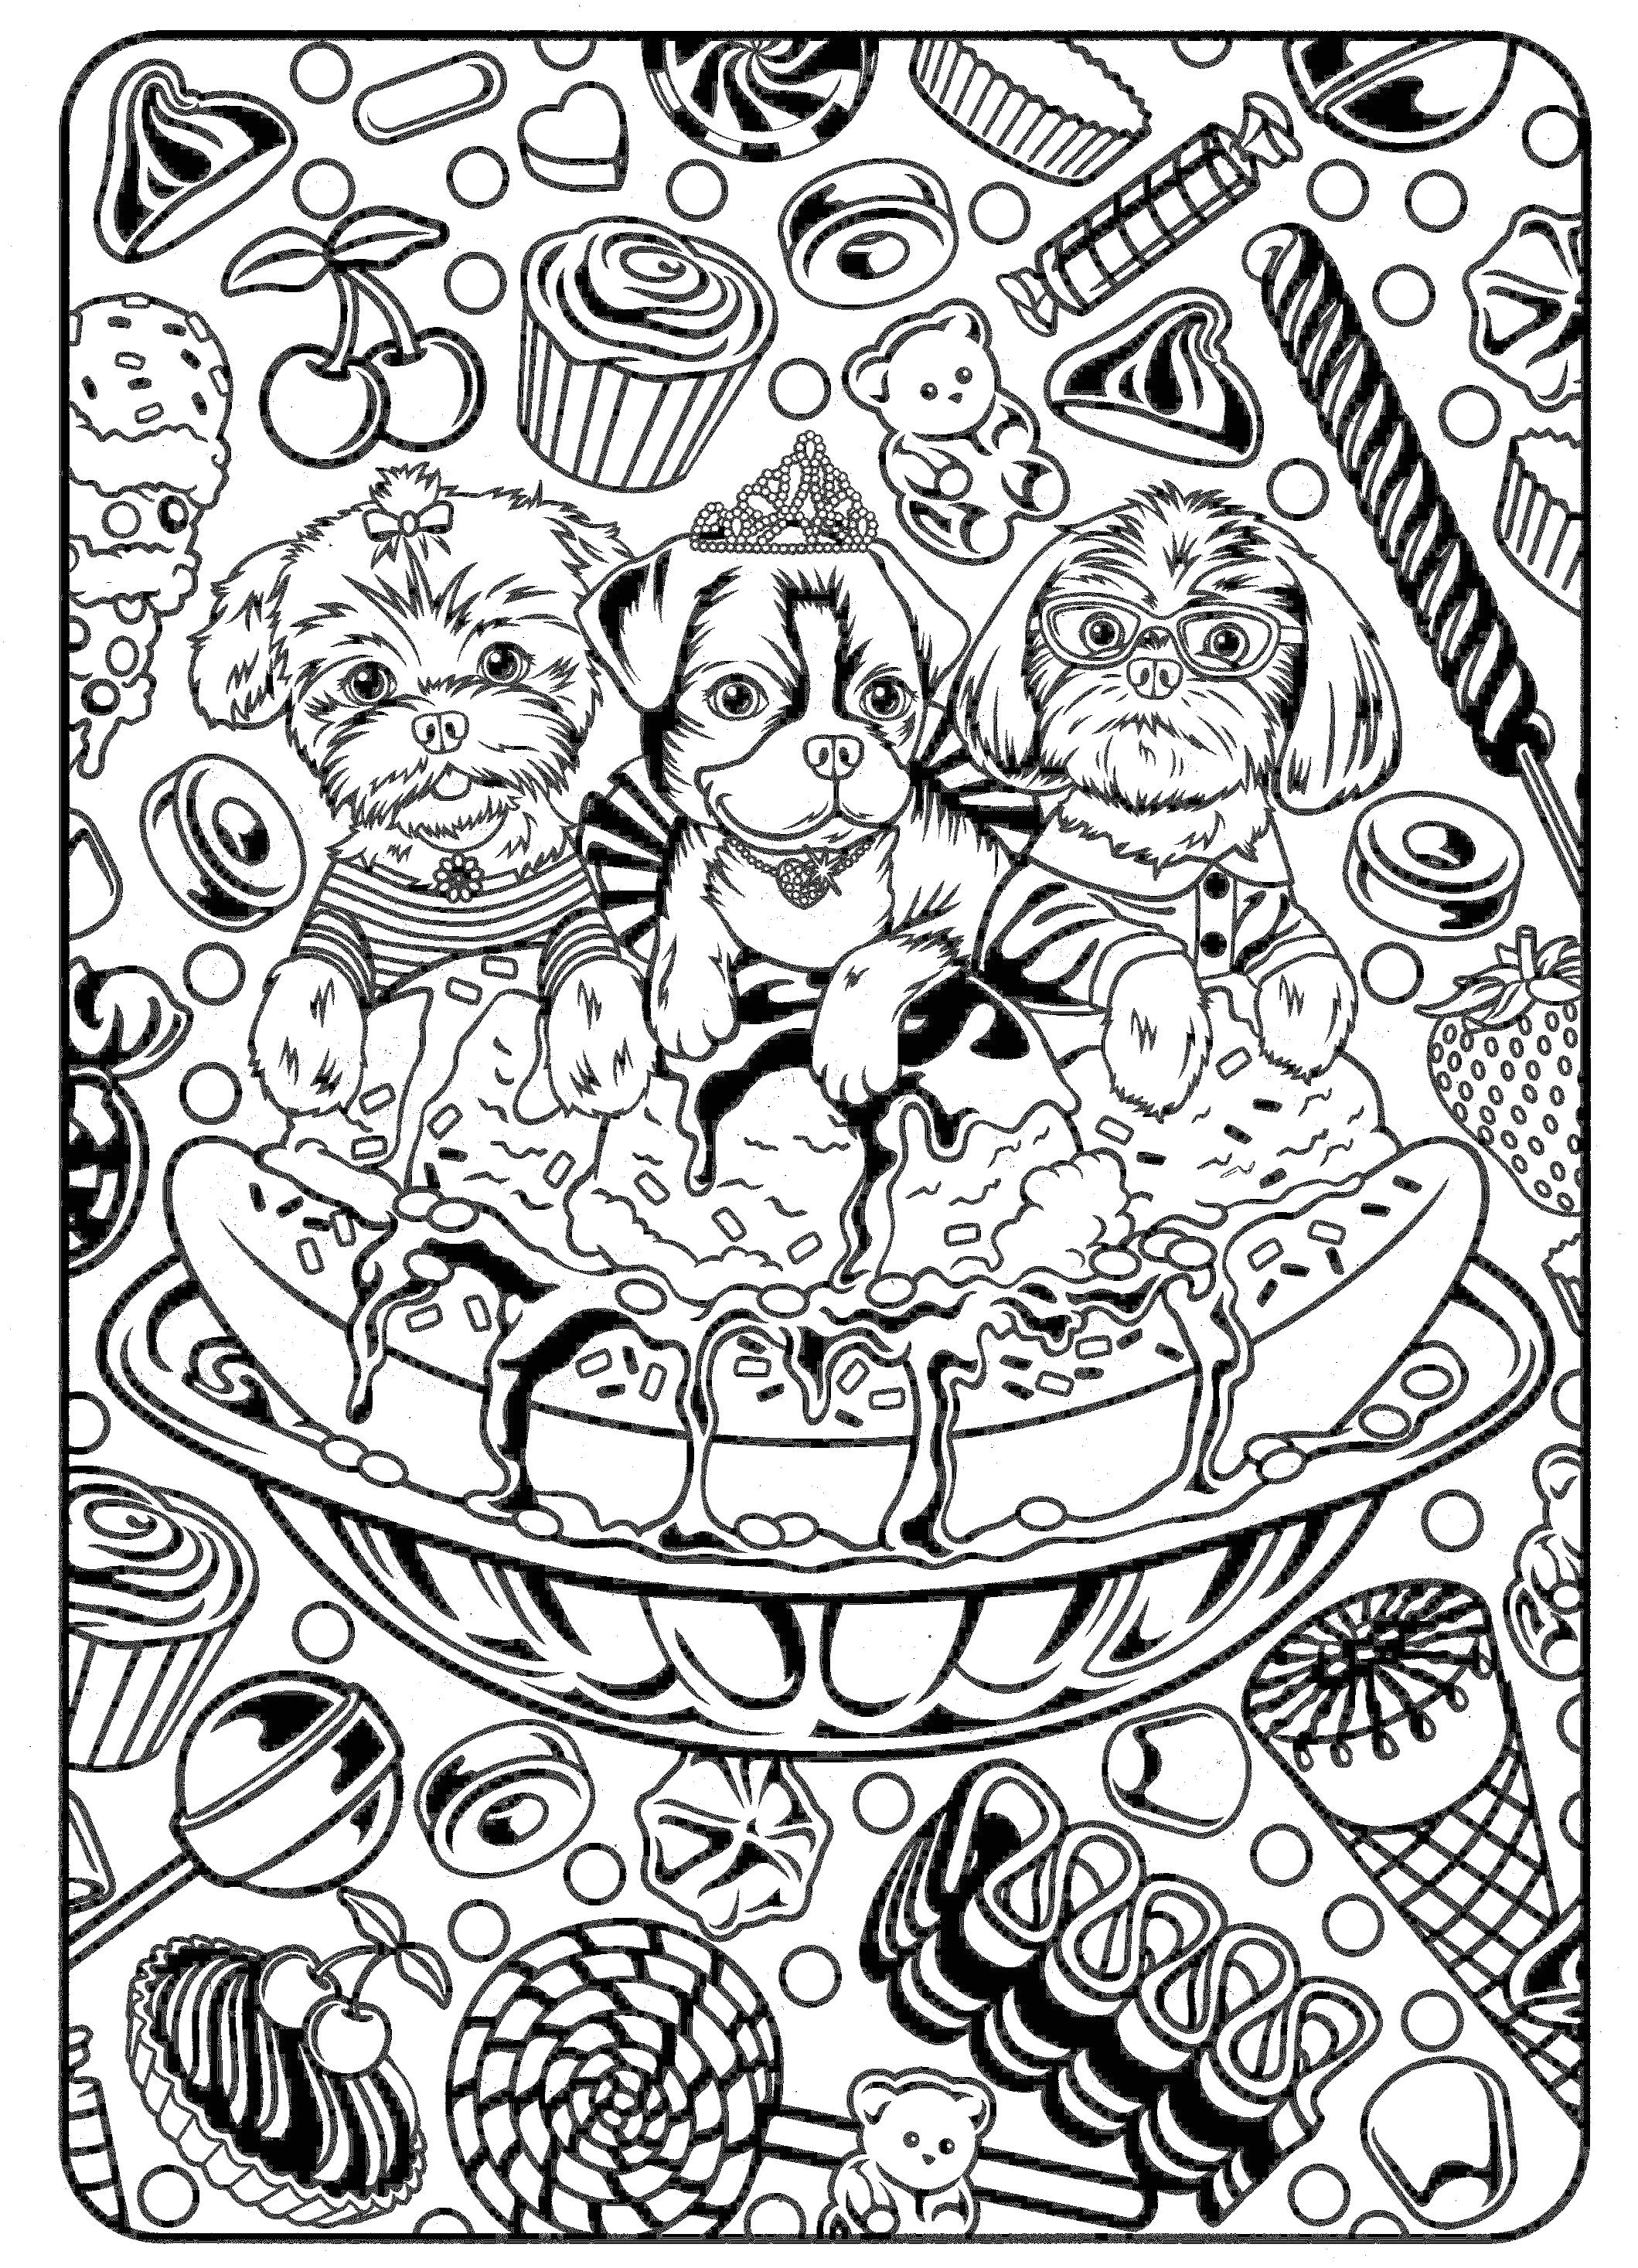 Zentangle Coloring Pages  Printable 4m - To print for your project